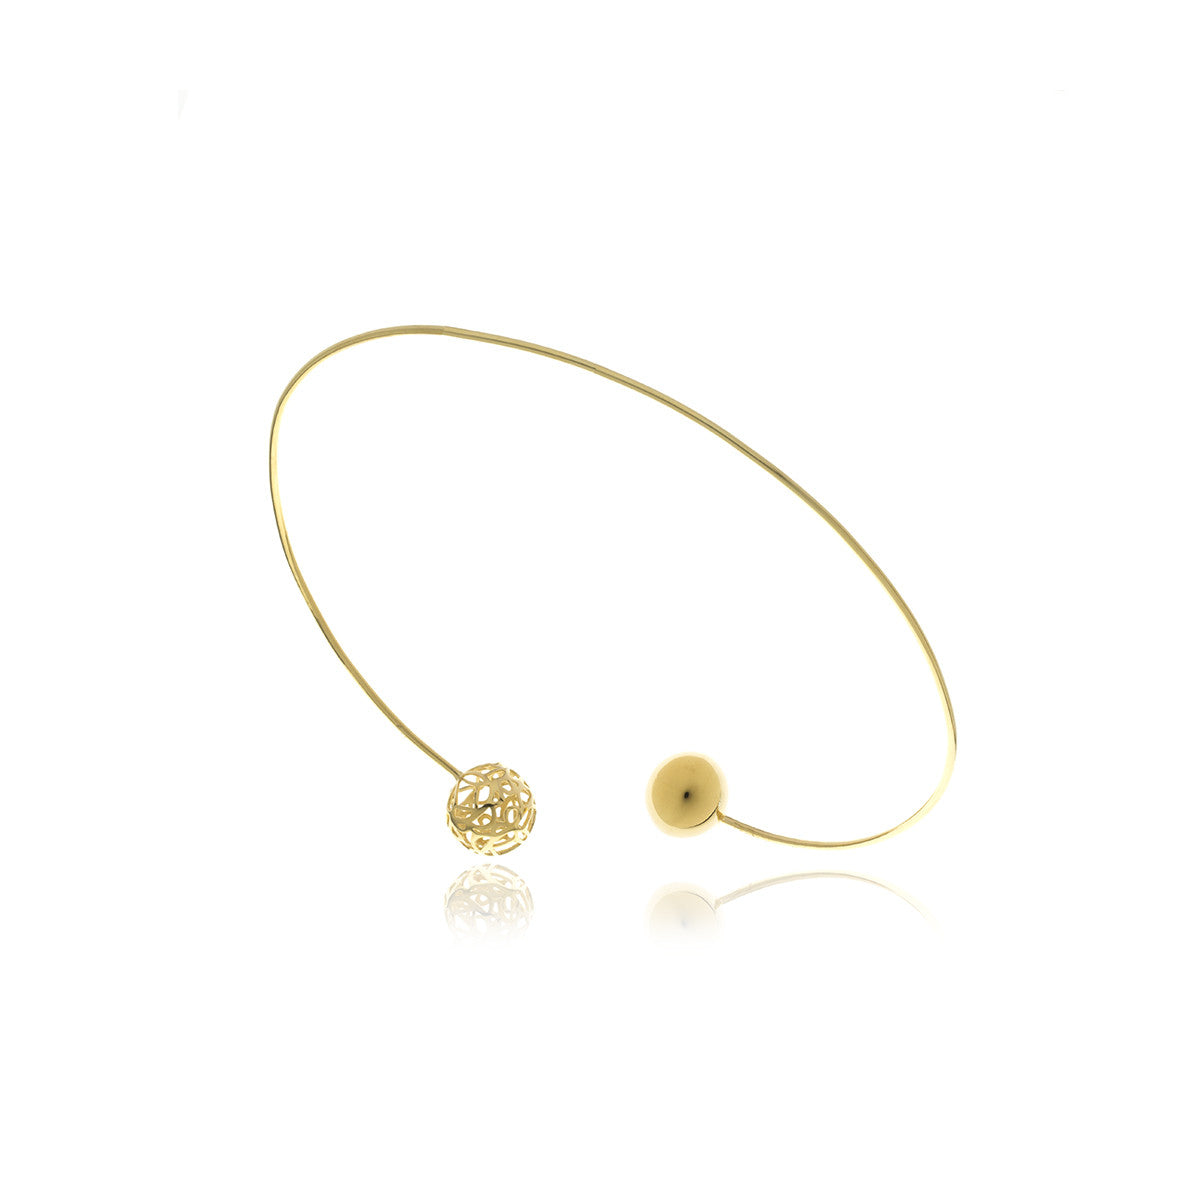 Signature Gold Sphere Shocker Necklace - MCK Brands